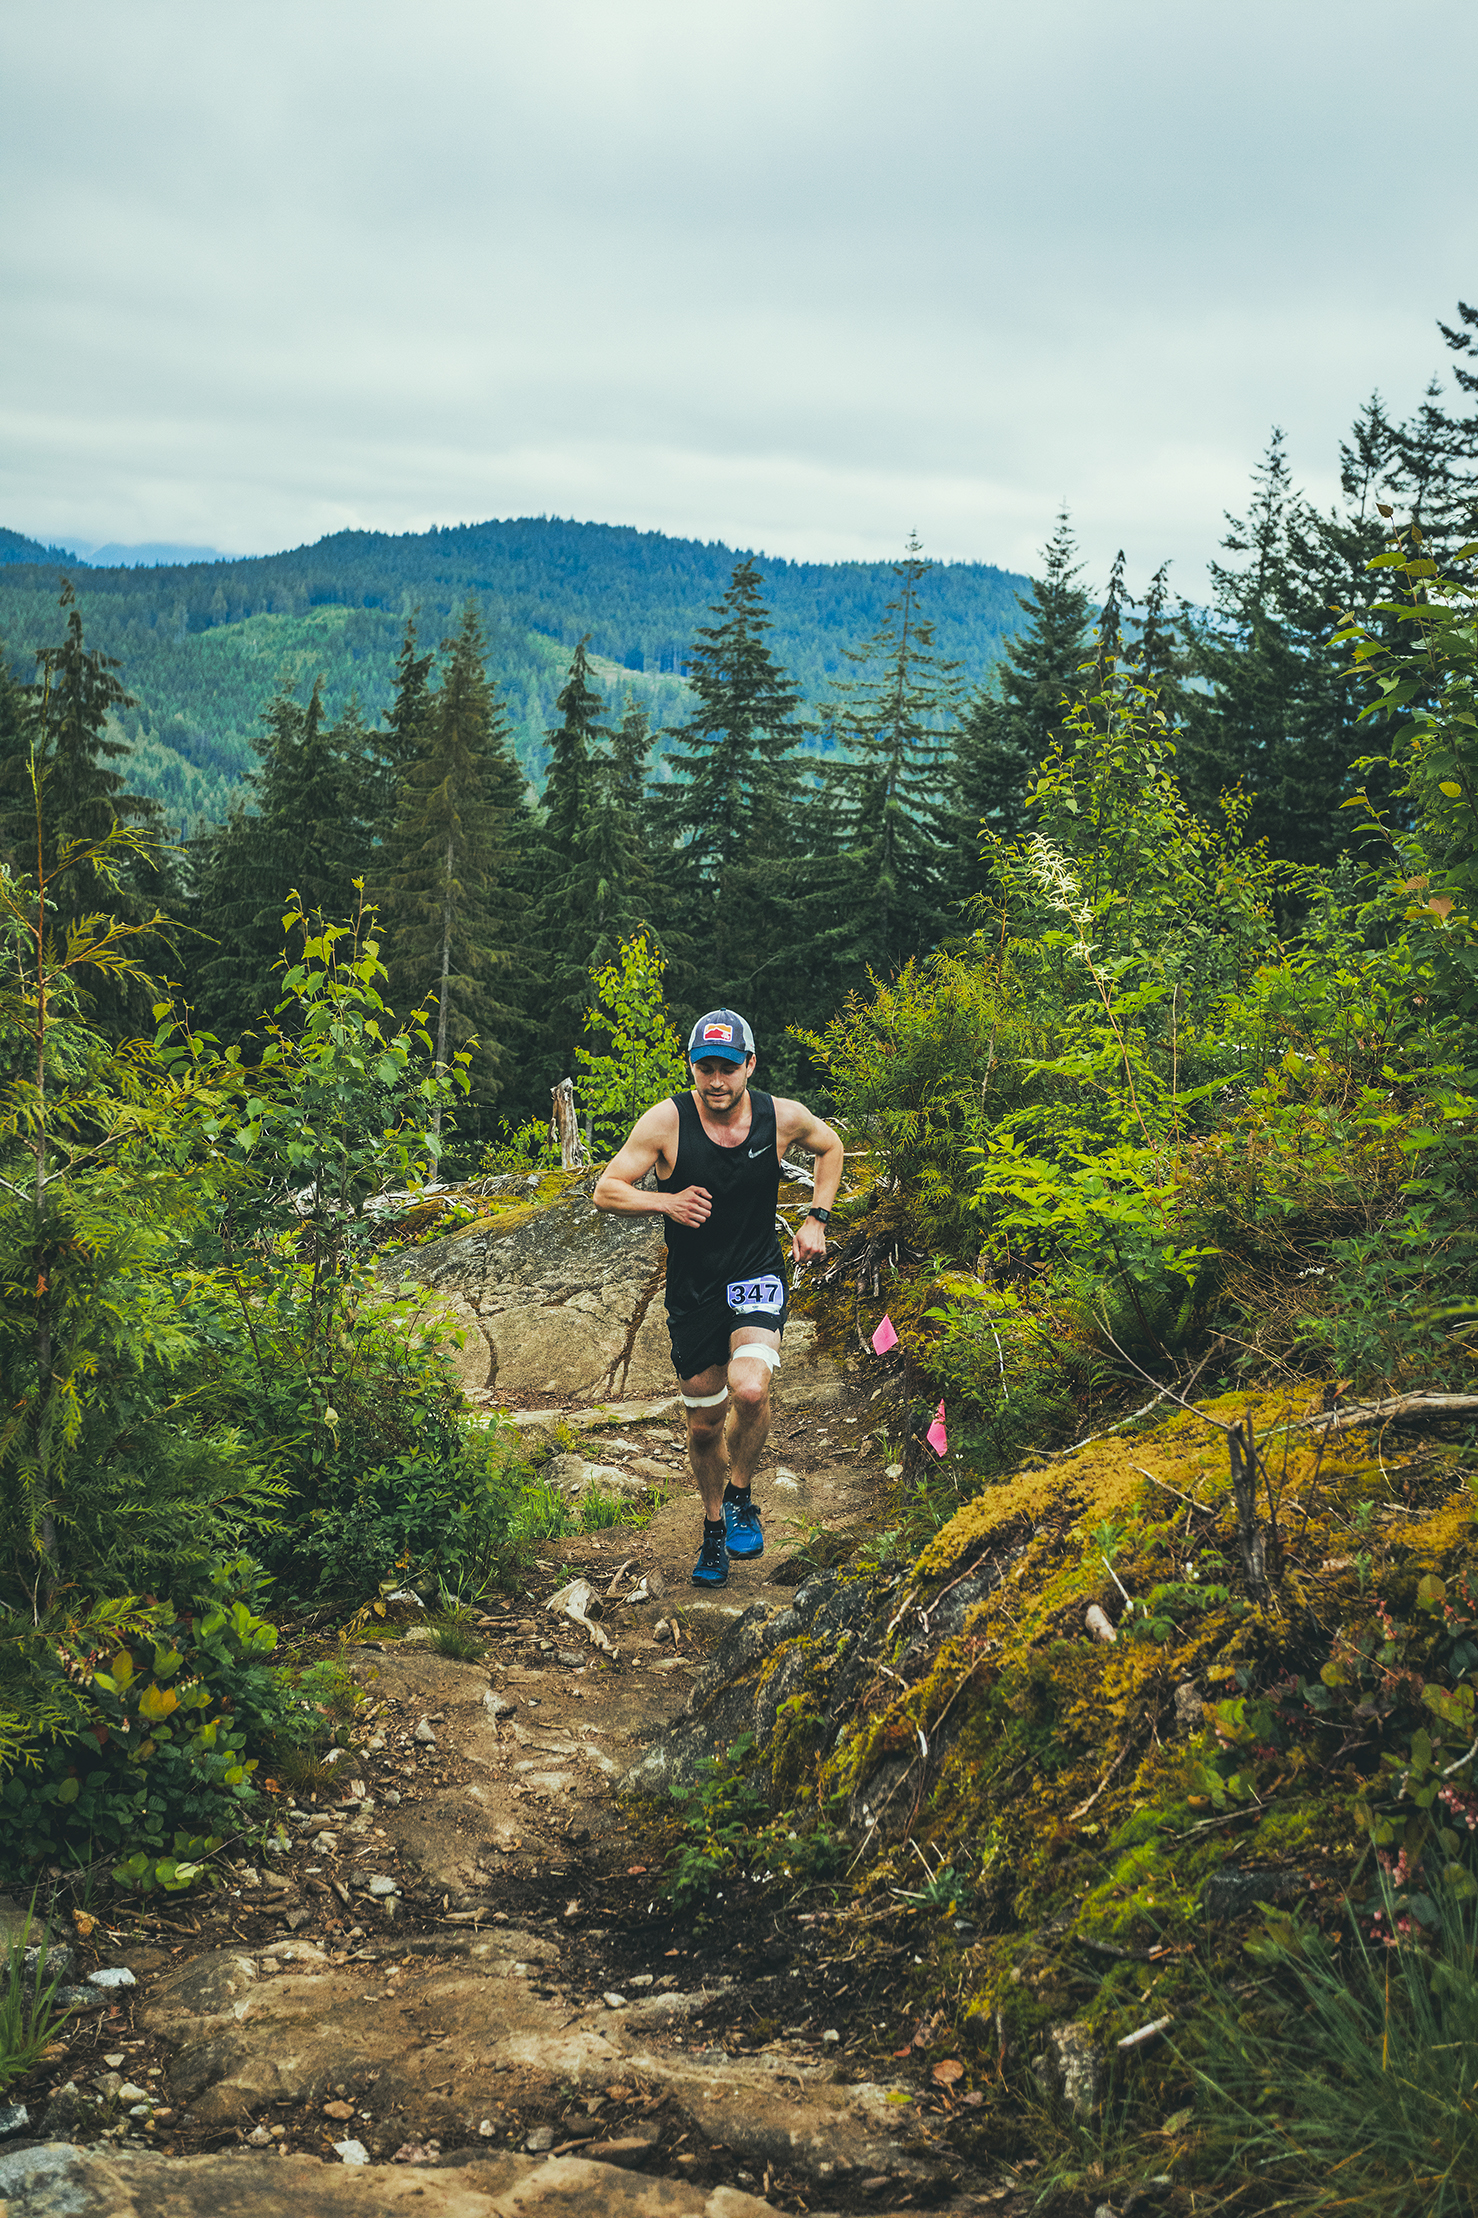 Fraser Valley Trail Races - Bear Mountain - IMG_1404 by Brice Ferre Studio - Vancouver Portrait Adventure and Athlete Photographer.jpg